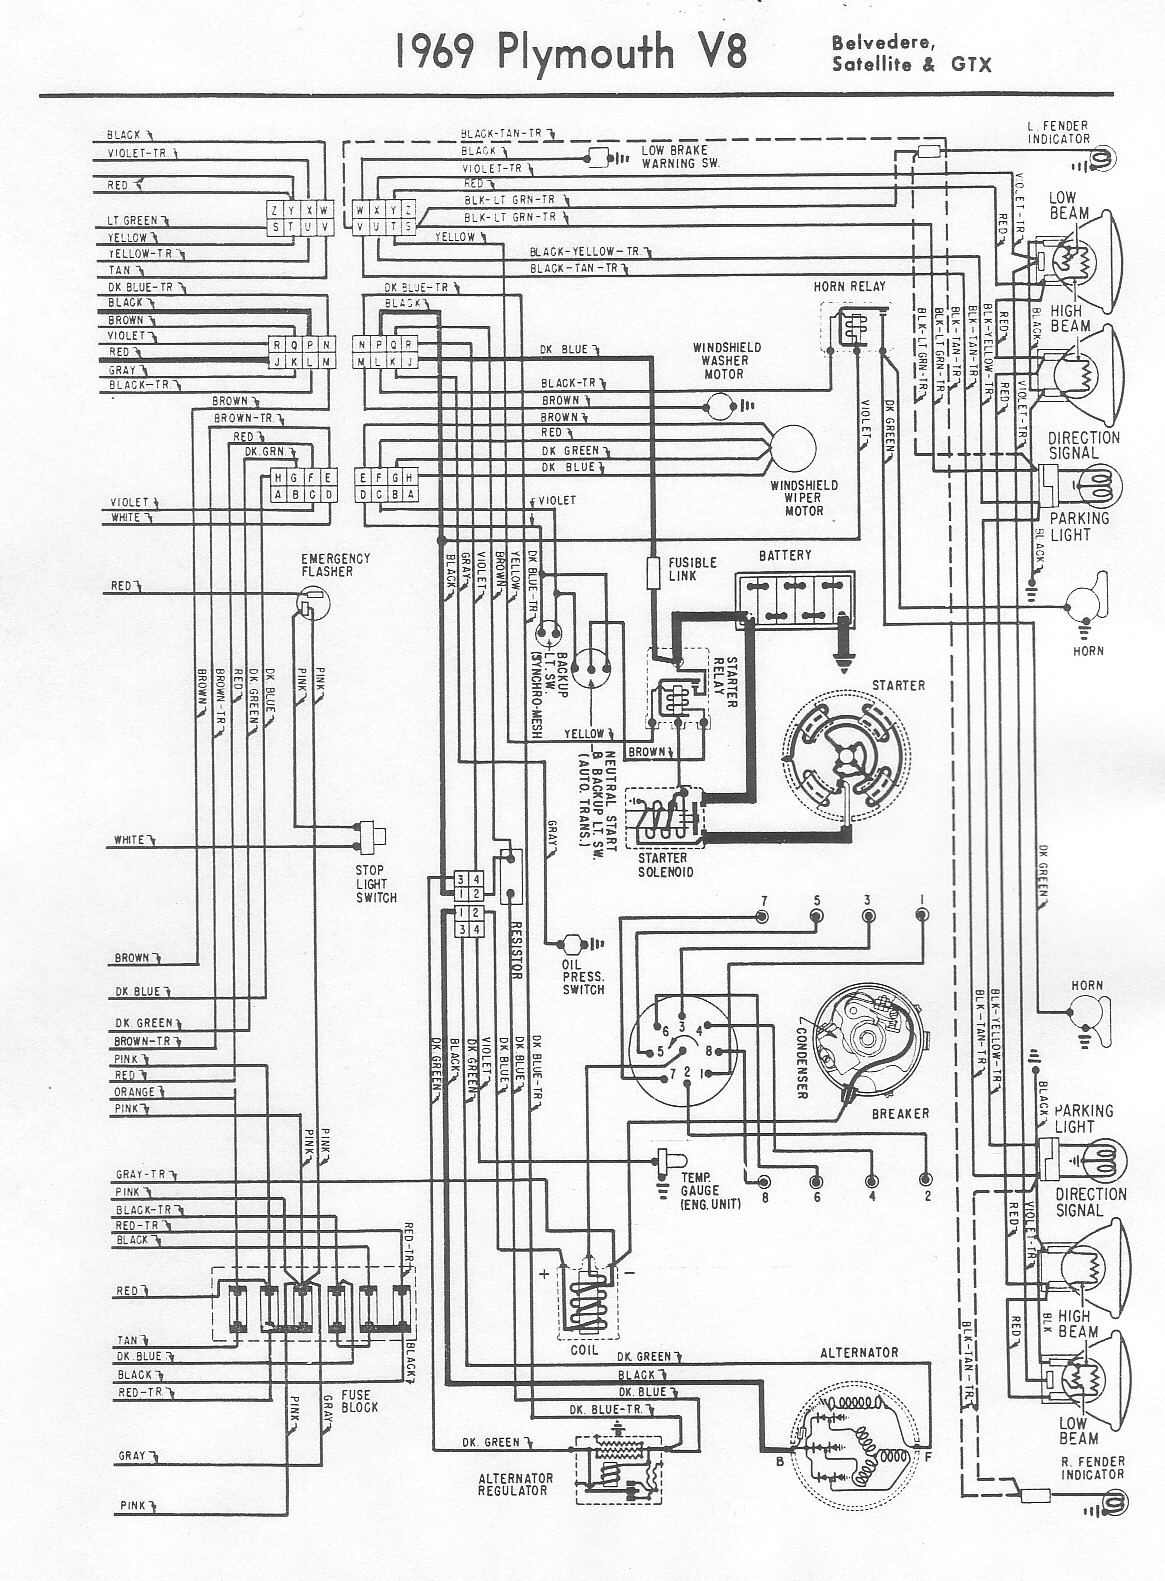 1966 Dodge Charger Headlight Wiring Diagram Libraries For Kenmore Heating Element 3387747 1969 Instrument Panel Free Picture1969 Barracuda Third Level